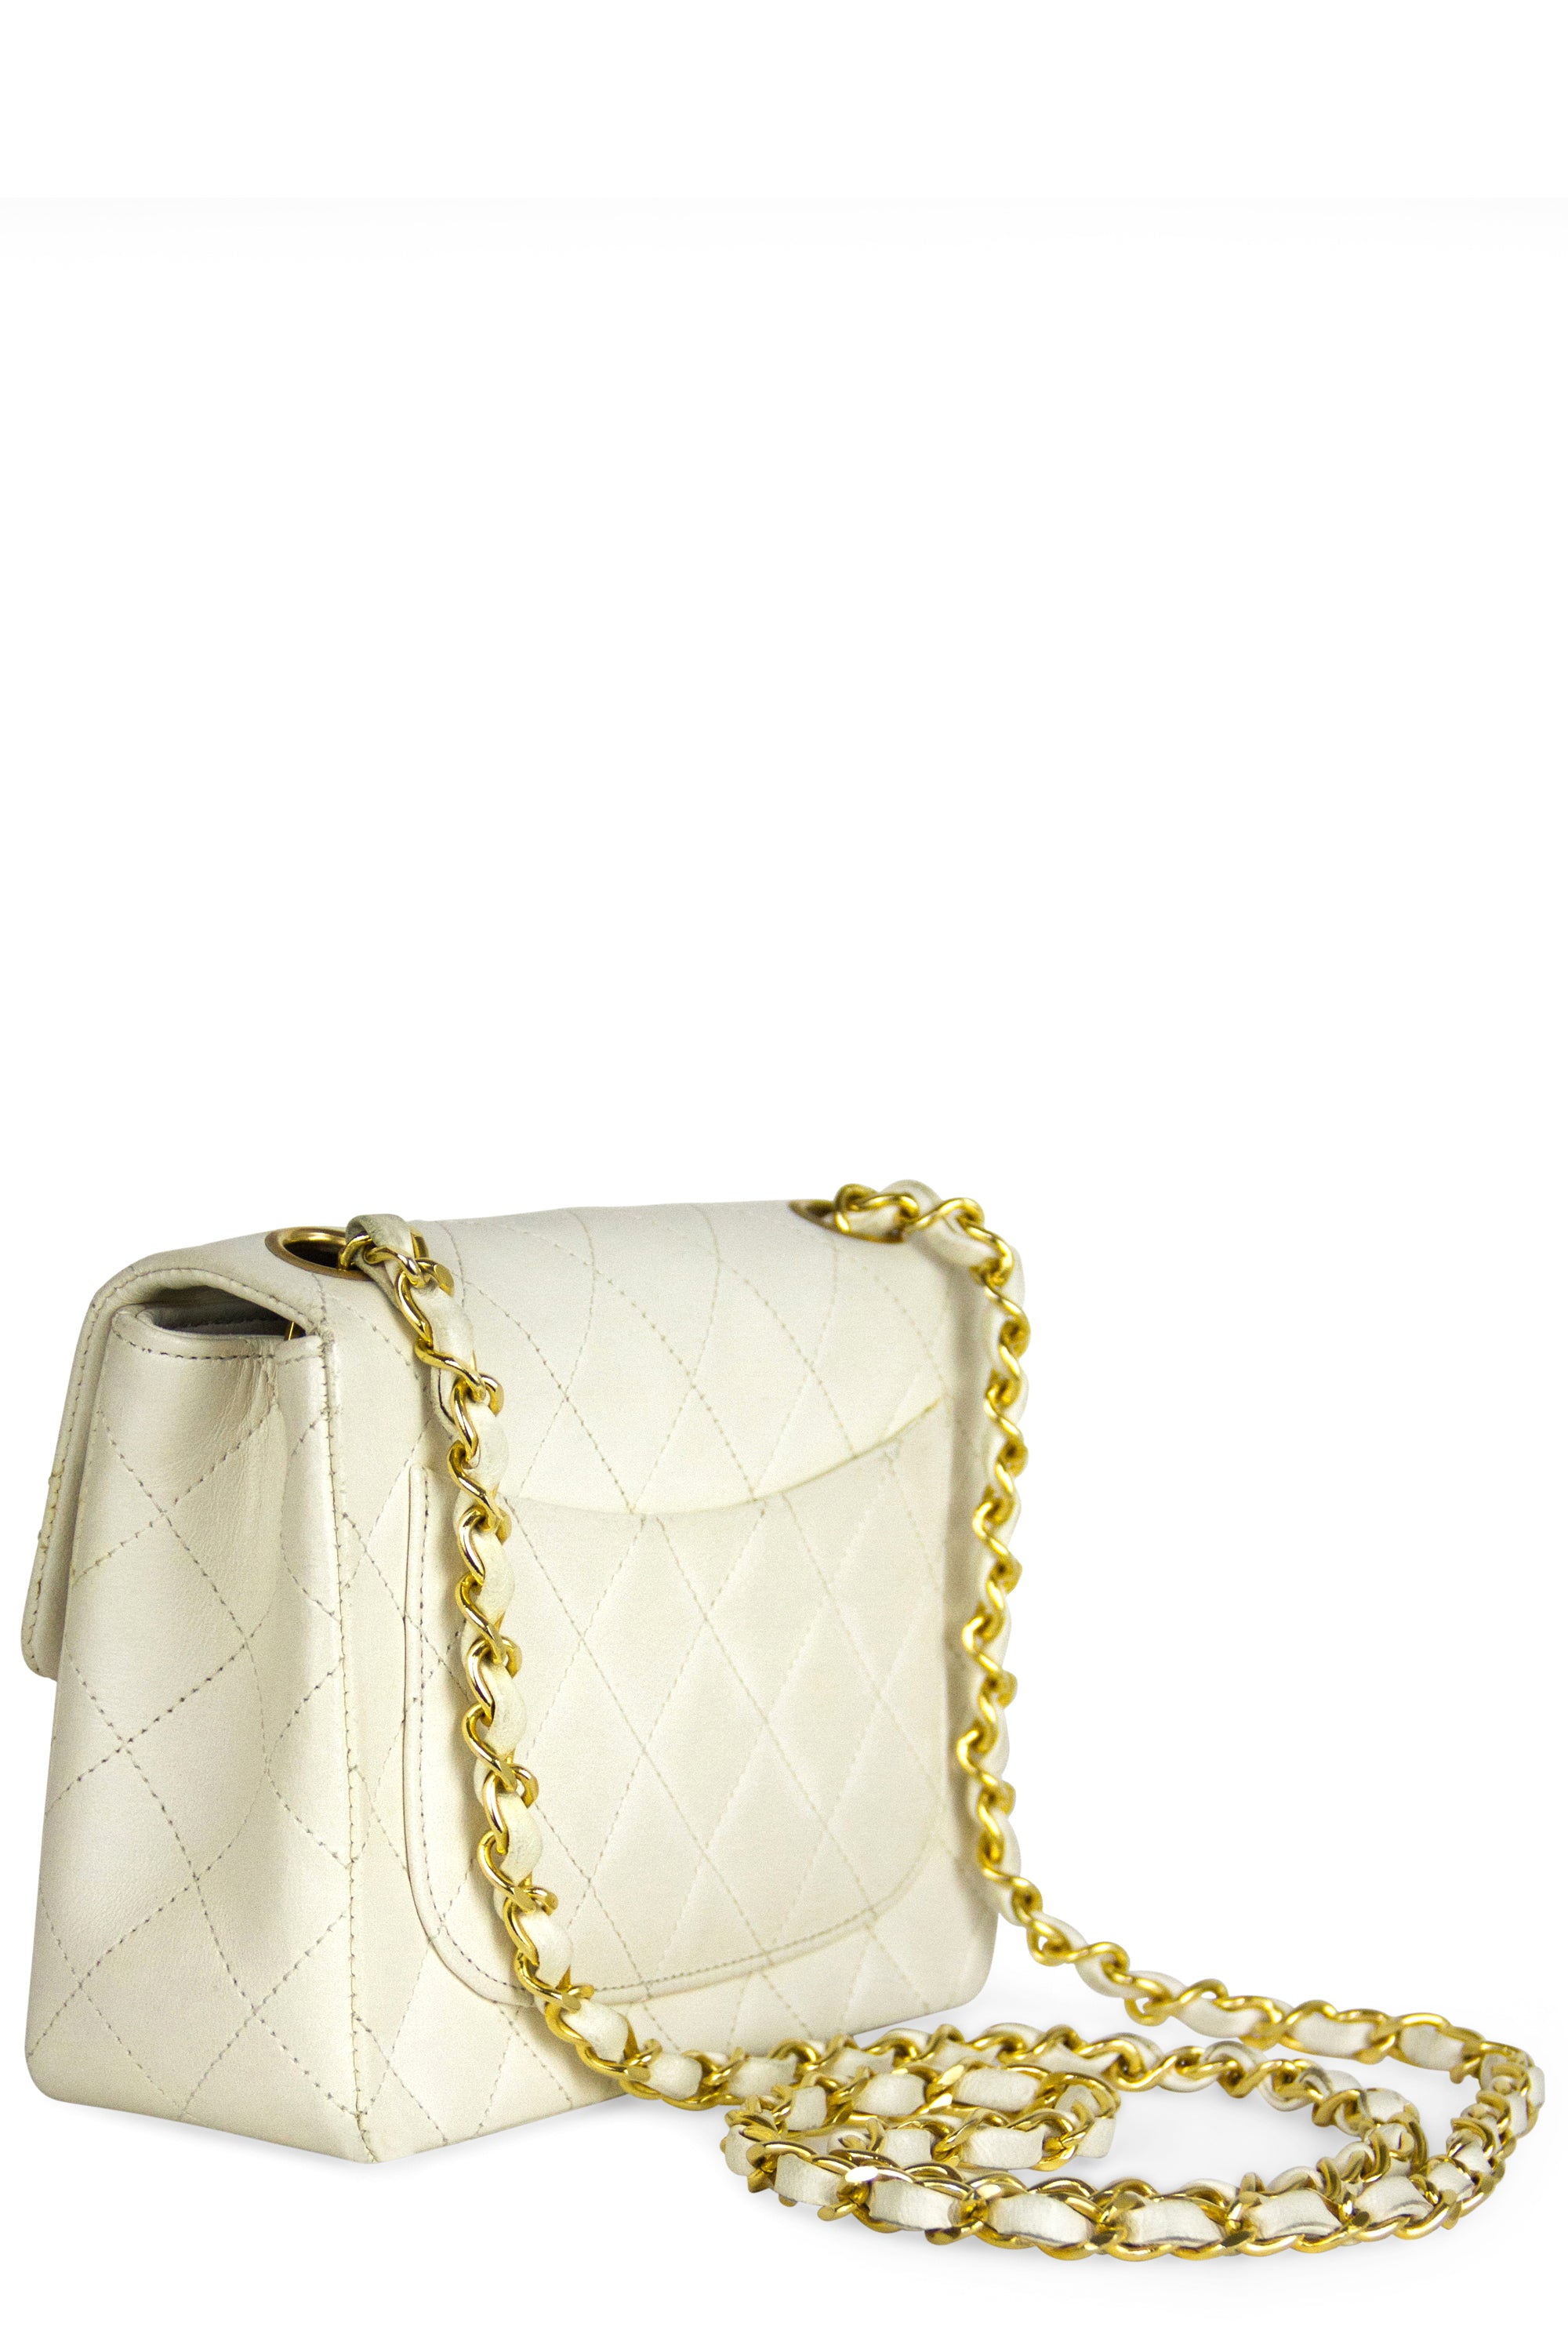 CHANEL Mini Flap Bag Off White